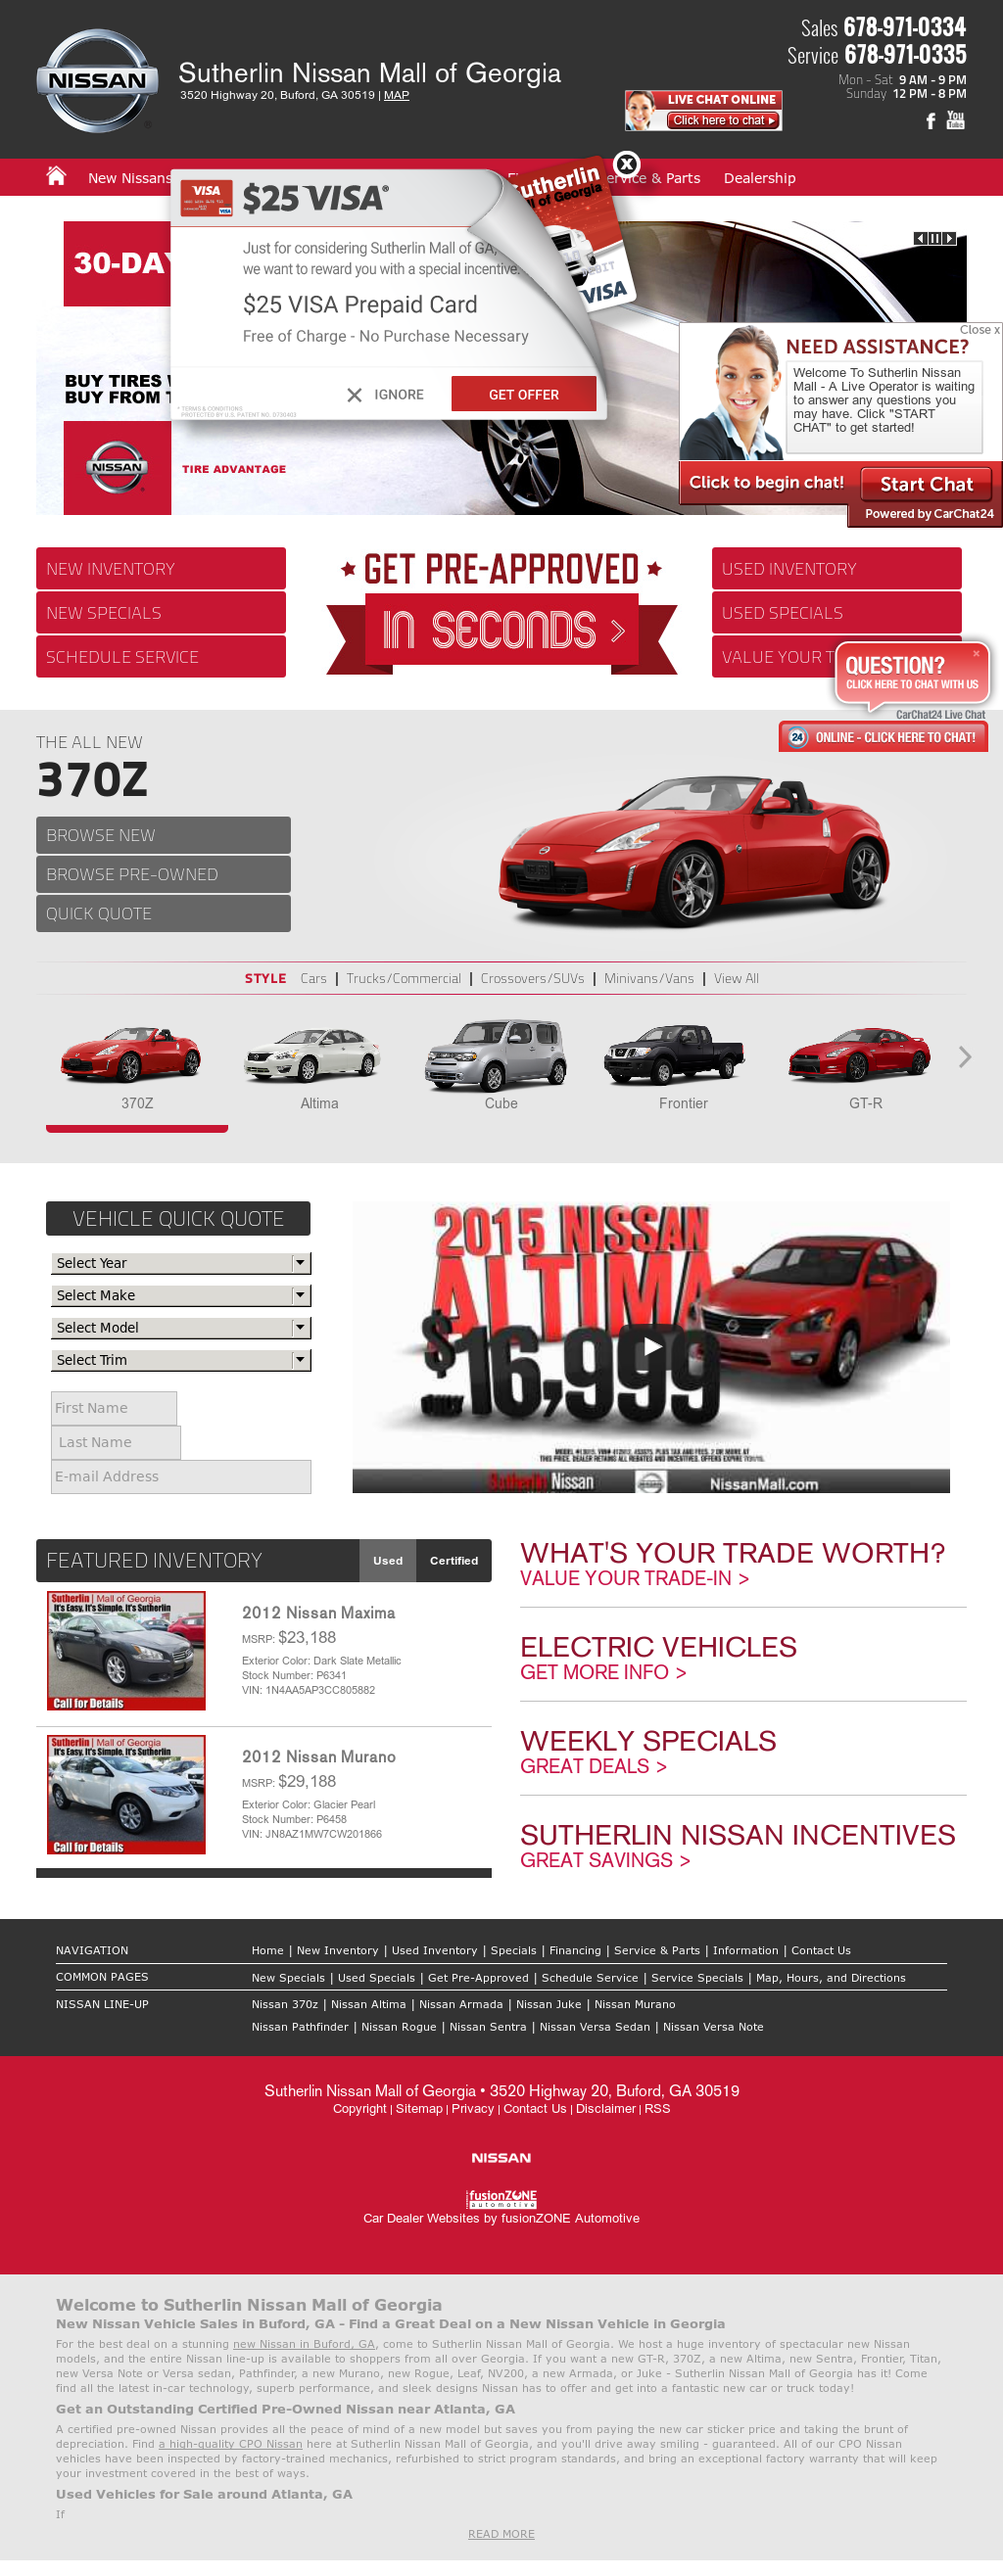 Sutherlin Nissan Mall Of Georgia Website History